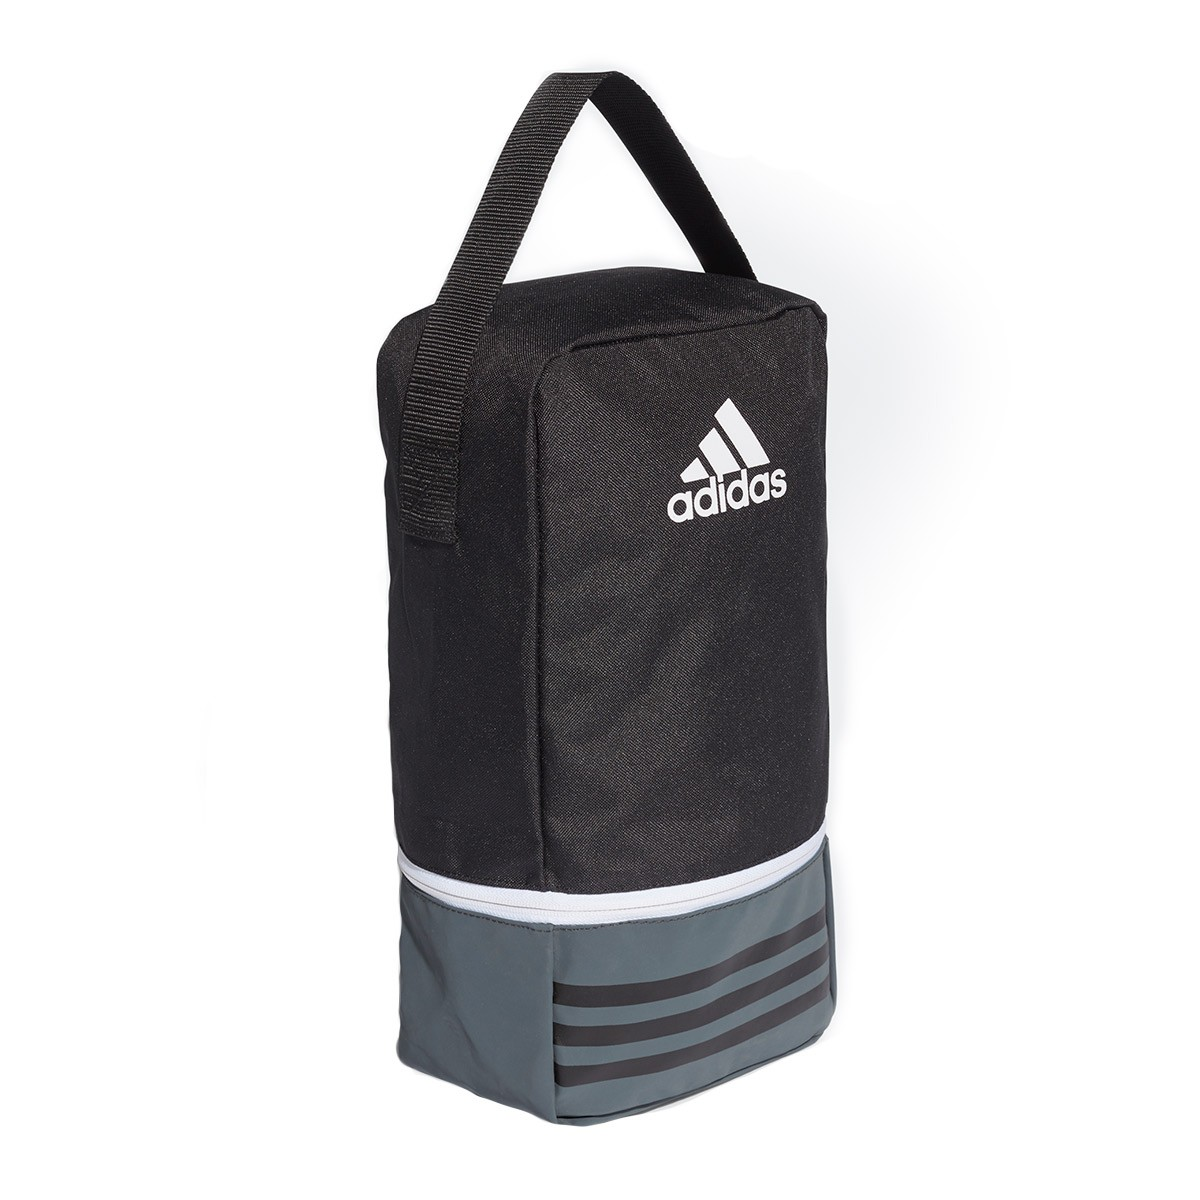 fa7a192989c01 Adidas De Boutique Sac Sb À Black Football Chaussure White Tiro oQrxBeECWd